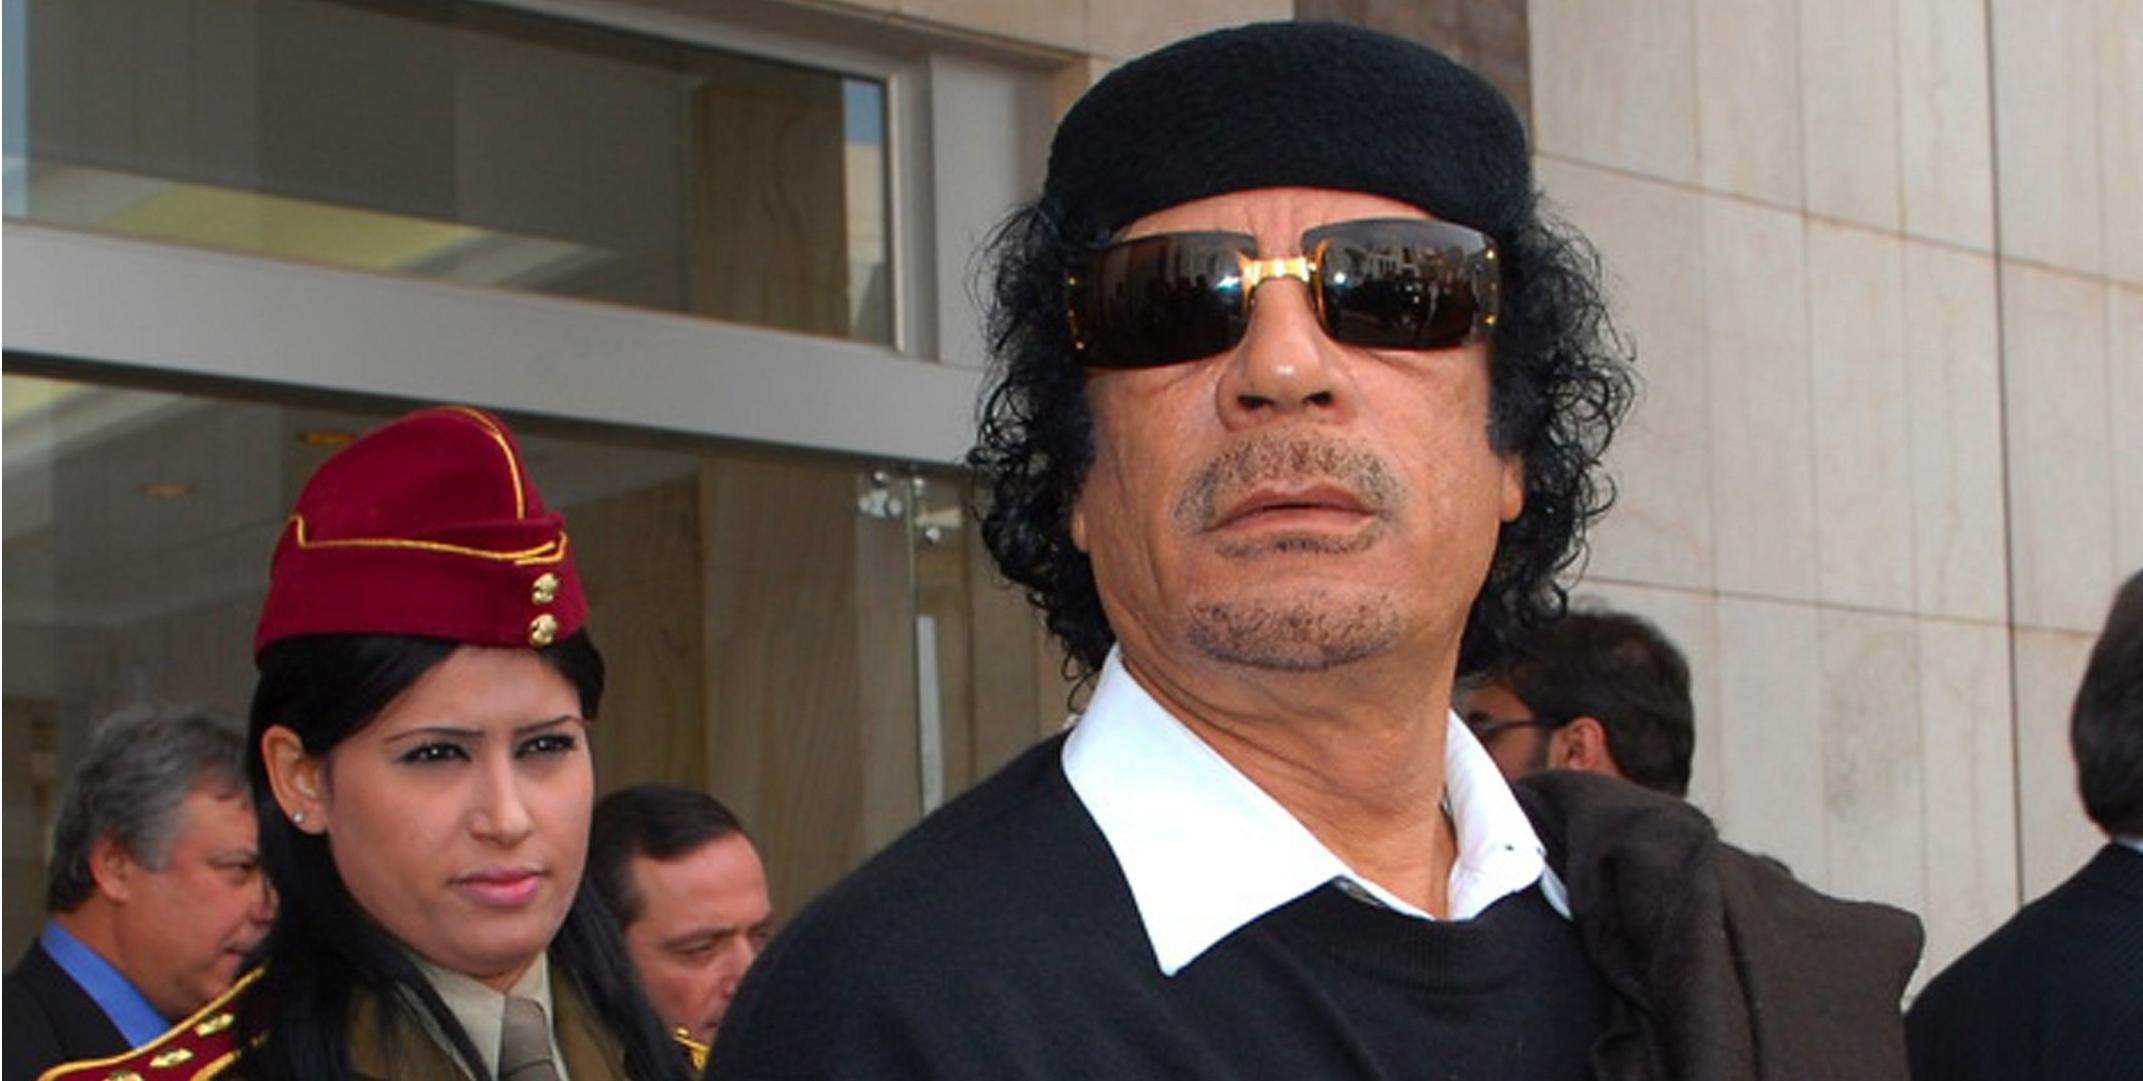 Libya's new age: Gaddafi killed in crossfire